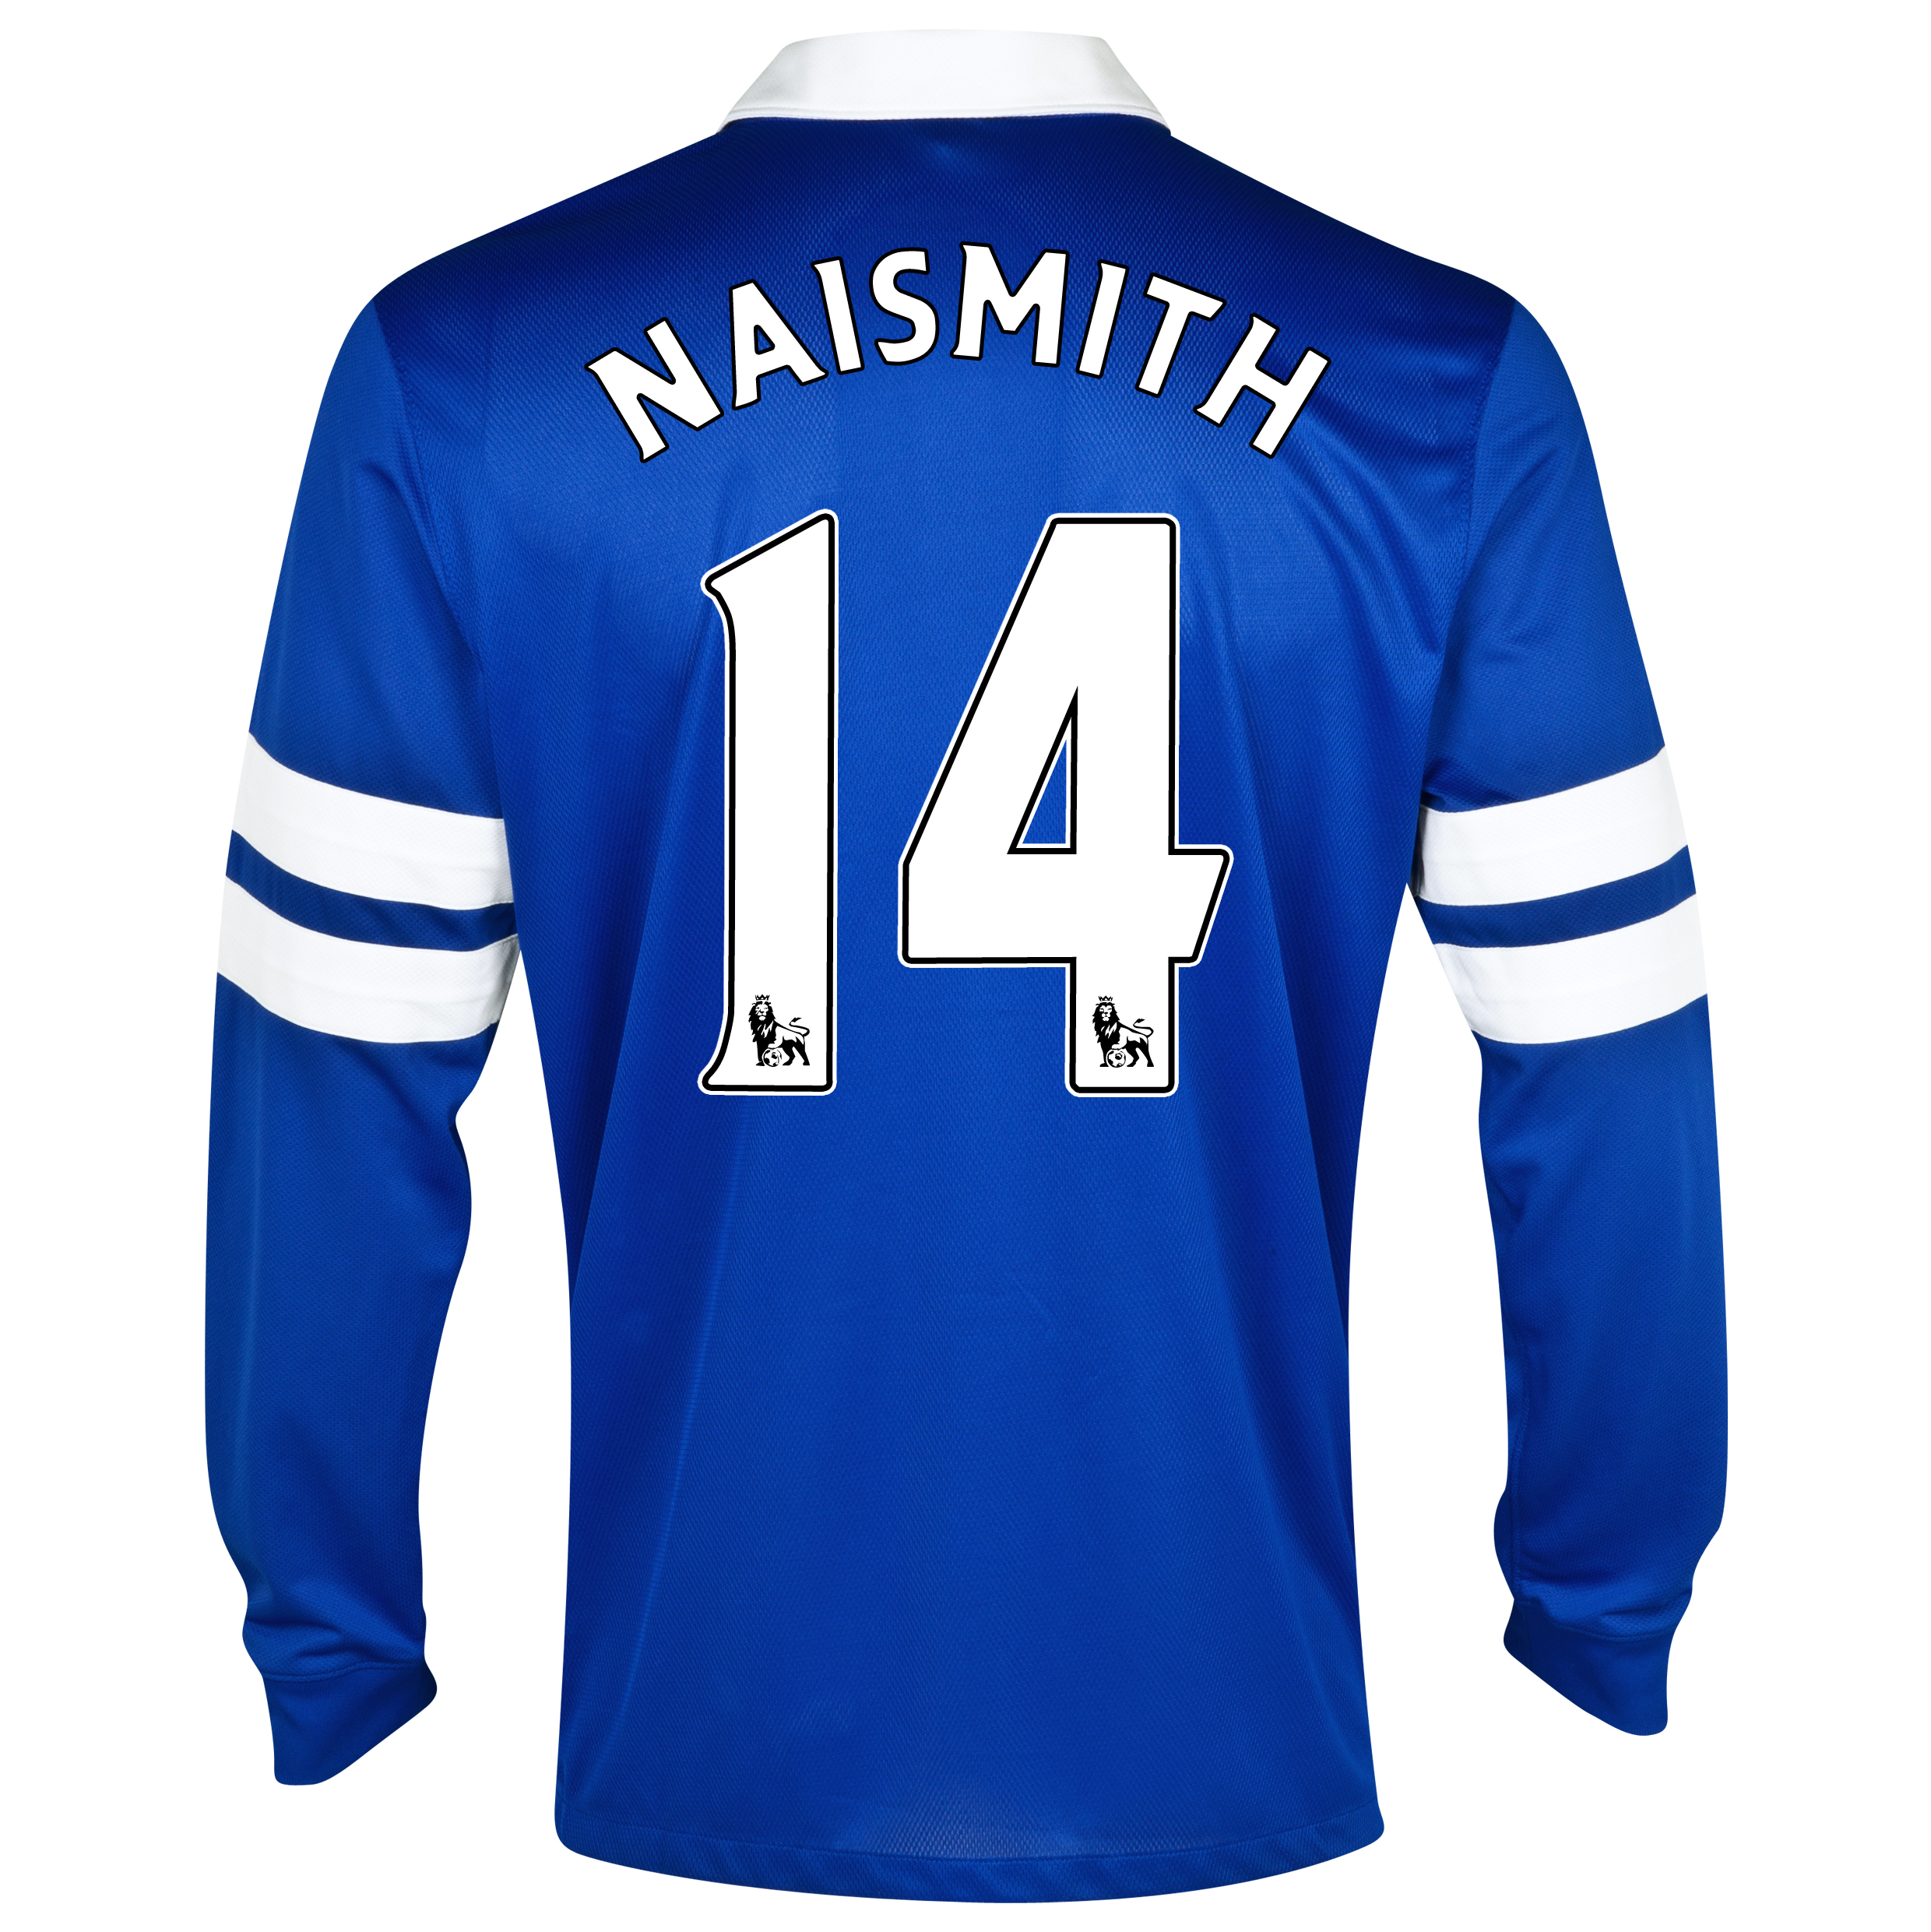 Everton Home Shirt 2013/14 - Junior - Long Sleeved Blue with Naismith 14 printing